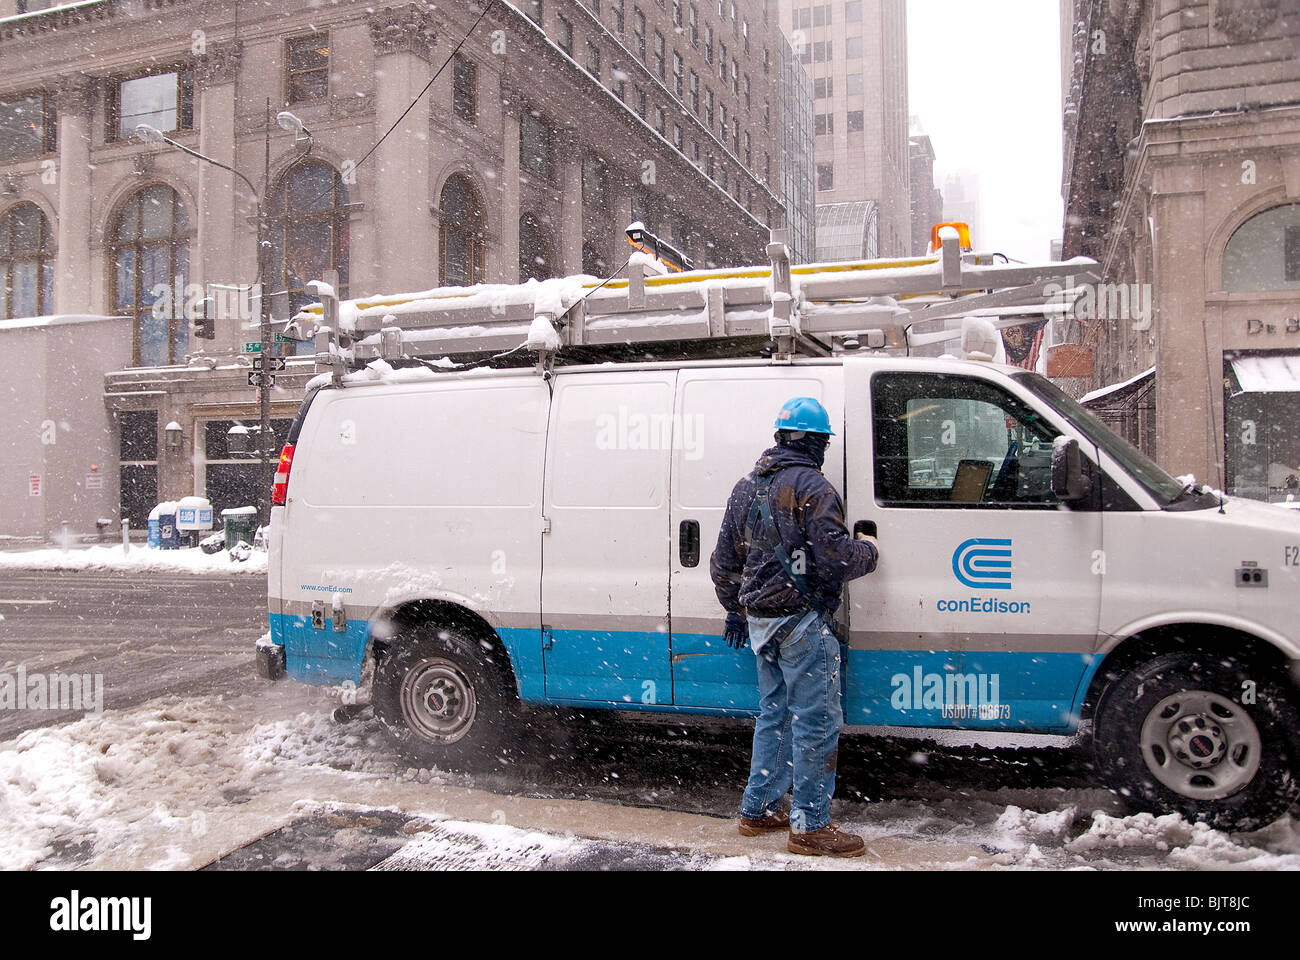 Consolidated Edison Company (Con Ed) during a winter storm in New York City, February 2010 - Stock Image